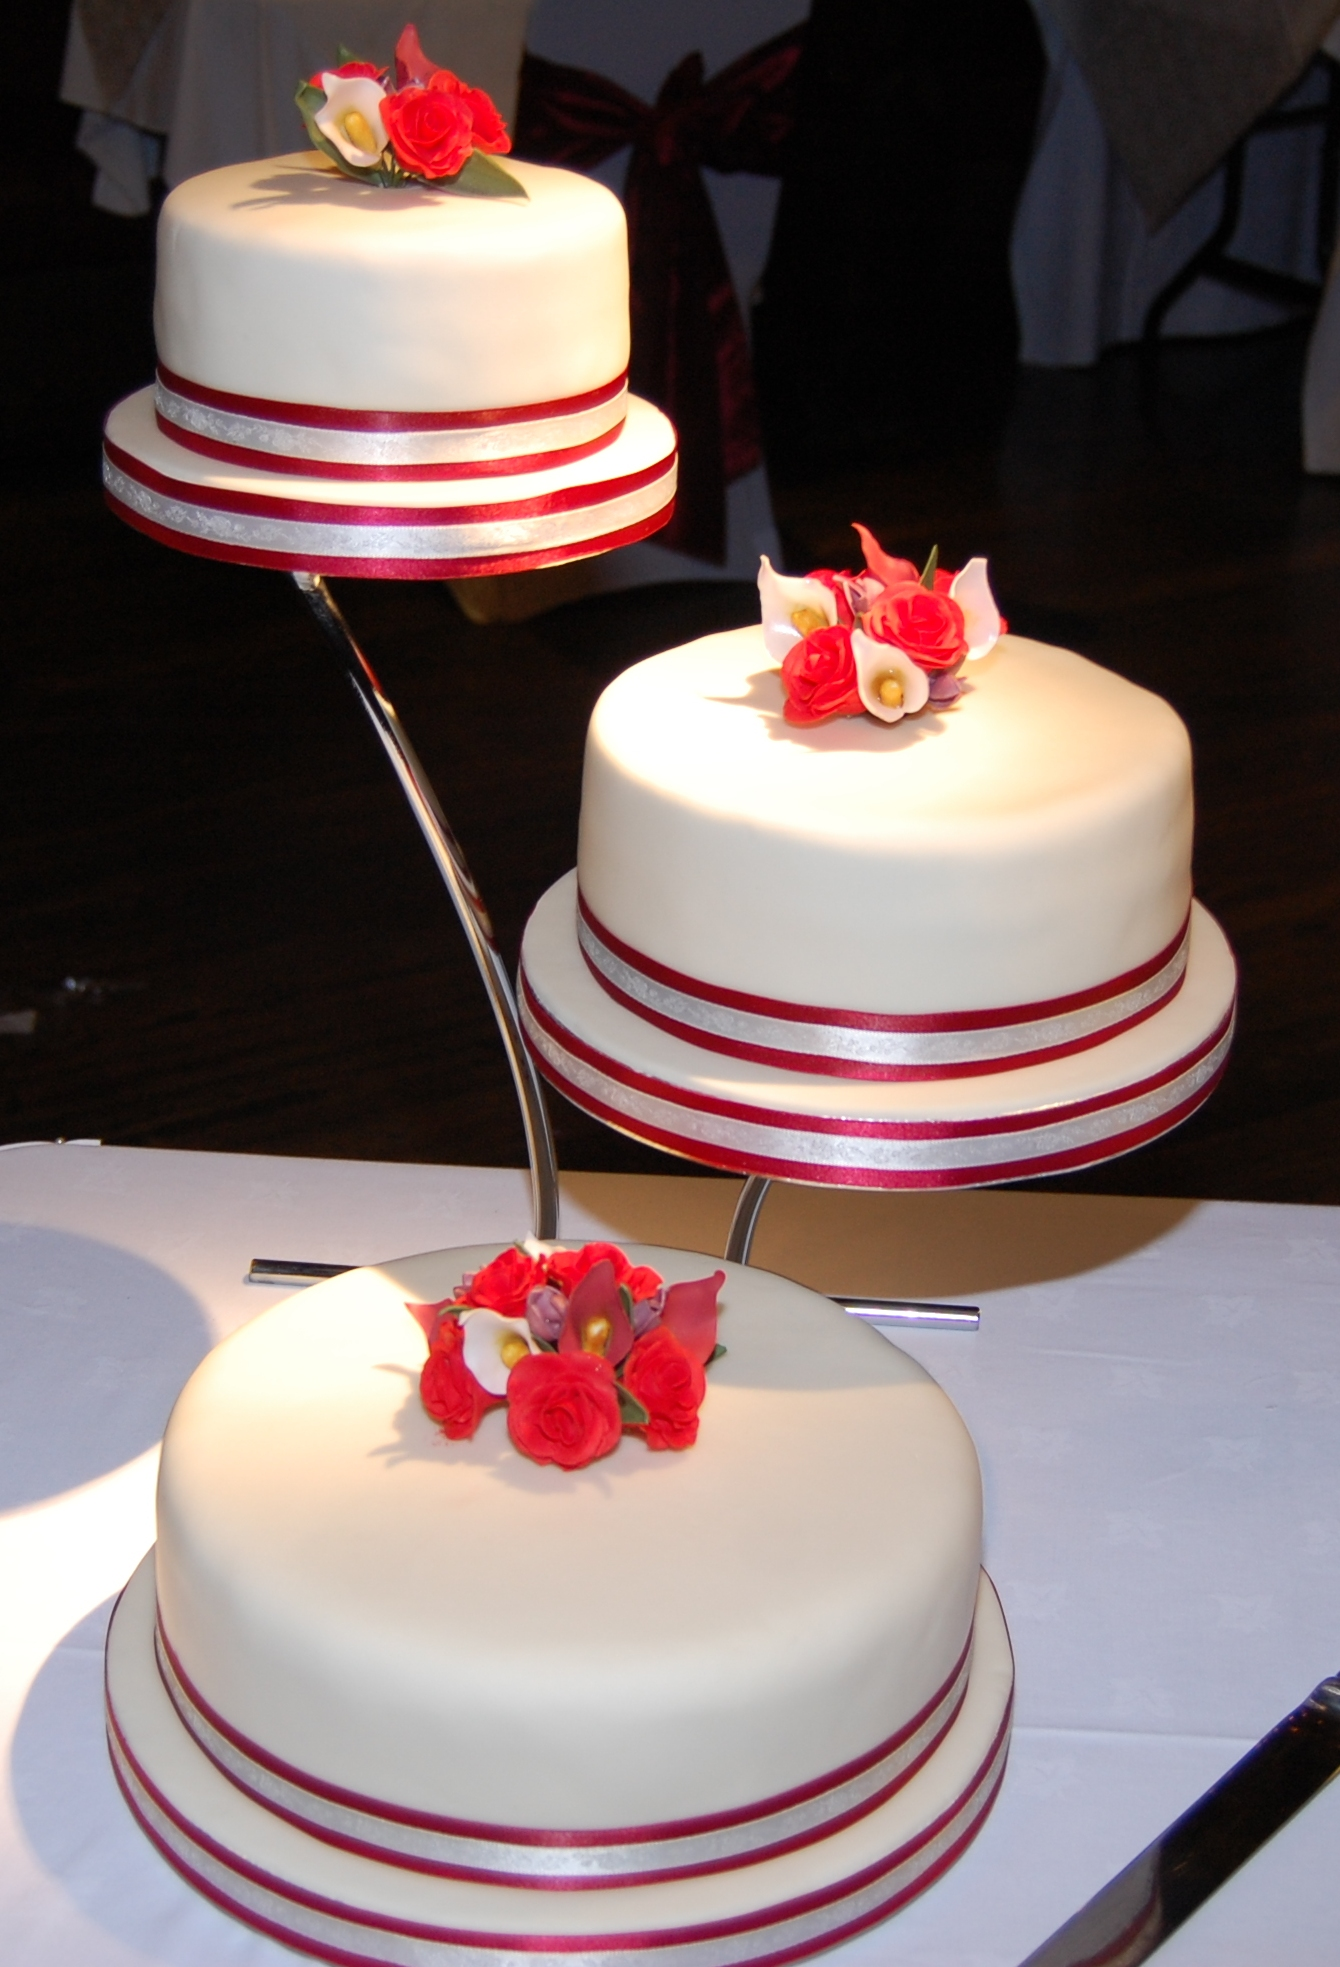 3 Tier Wedding Cake With Roses And Calla Lilies